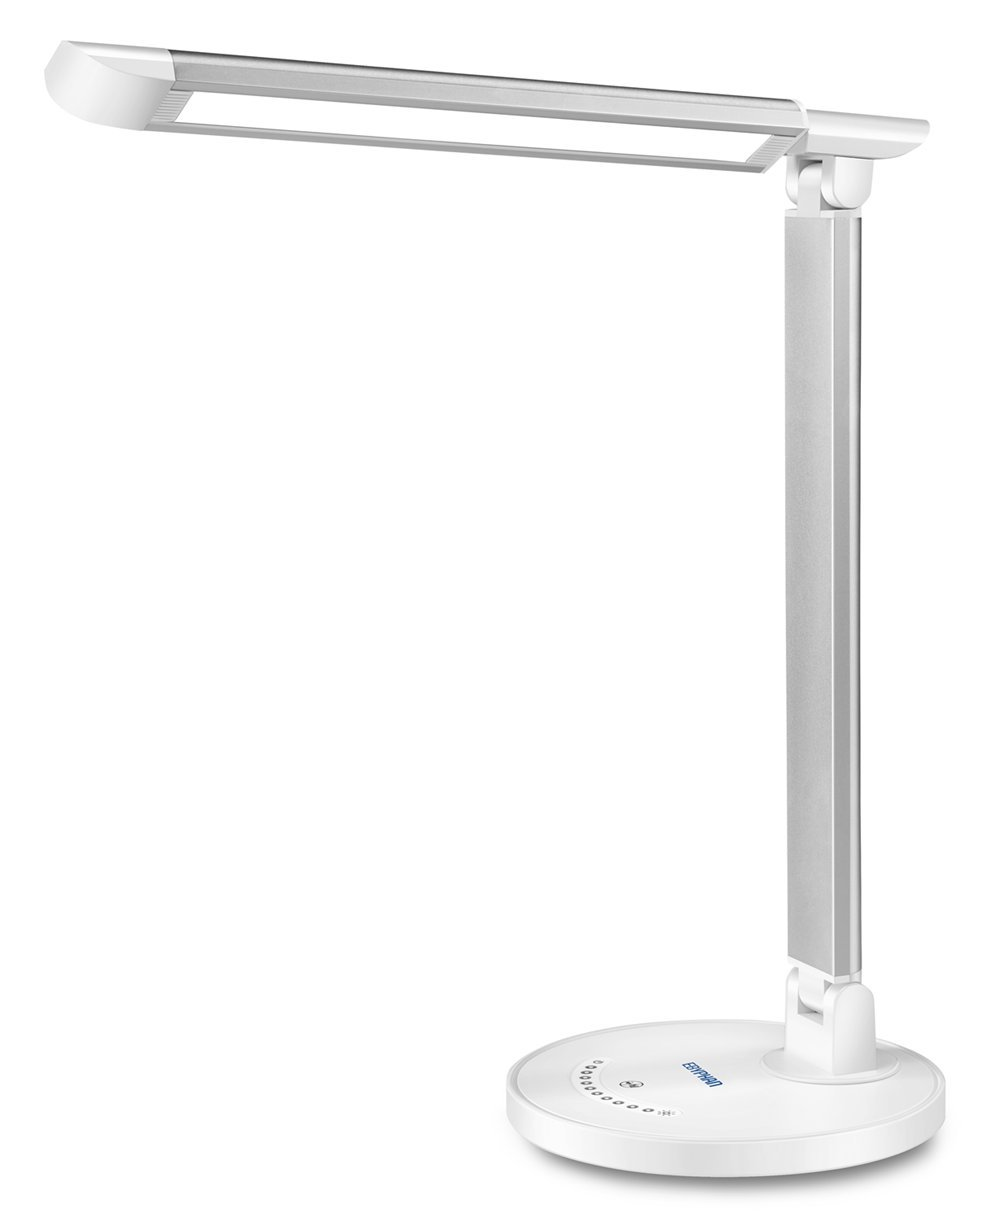 Ebyphan Led Desk Lamp,Modern Stylish Table Lamps,Reading Lamp,Touch Control,5 Lighting Modes with 7 Dimmable Brightness Levels,White Color,12W